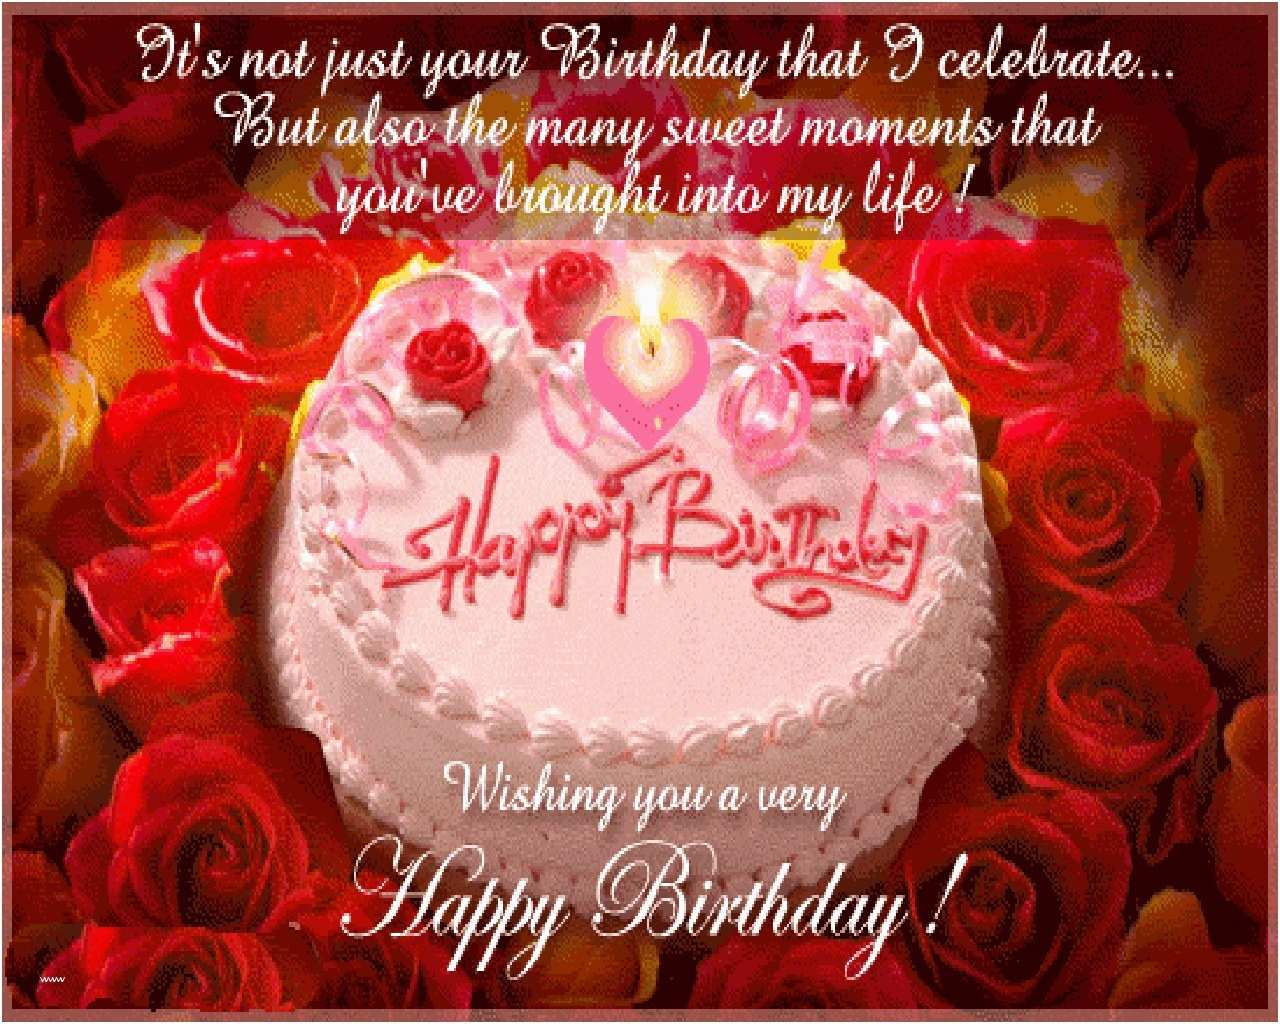 wish you happy birthday sms ; happy-birthday-sms-and-image-fresh-happy-birthday-quotes-to-best-friend-lovely-best-birthday-wishes-for-of-happy-birthday-sms-and-image